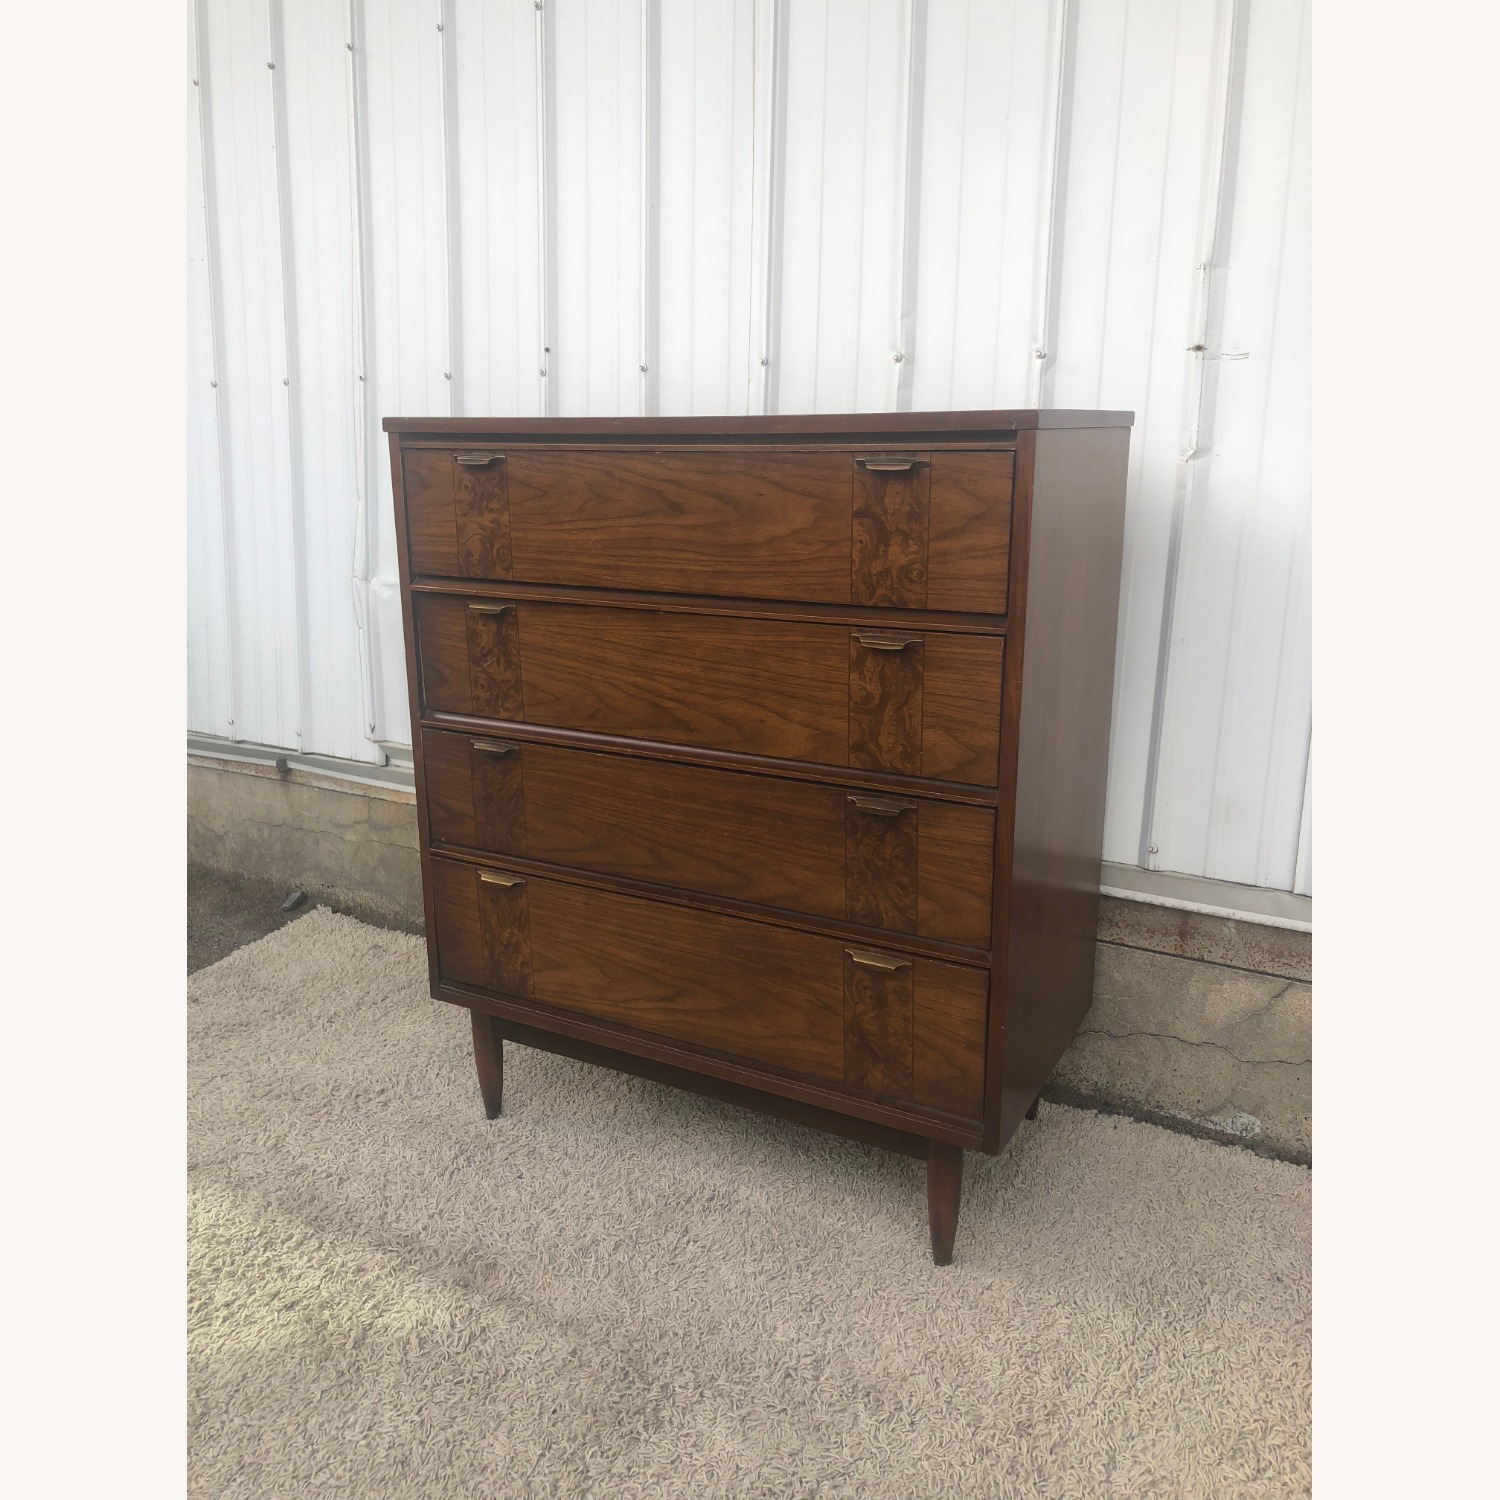 Mid Century Four Drawer Dresser with Burlwood - image-3